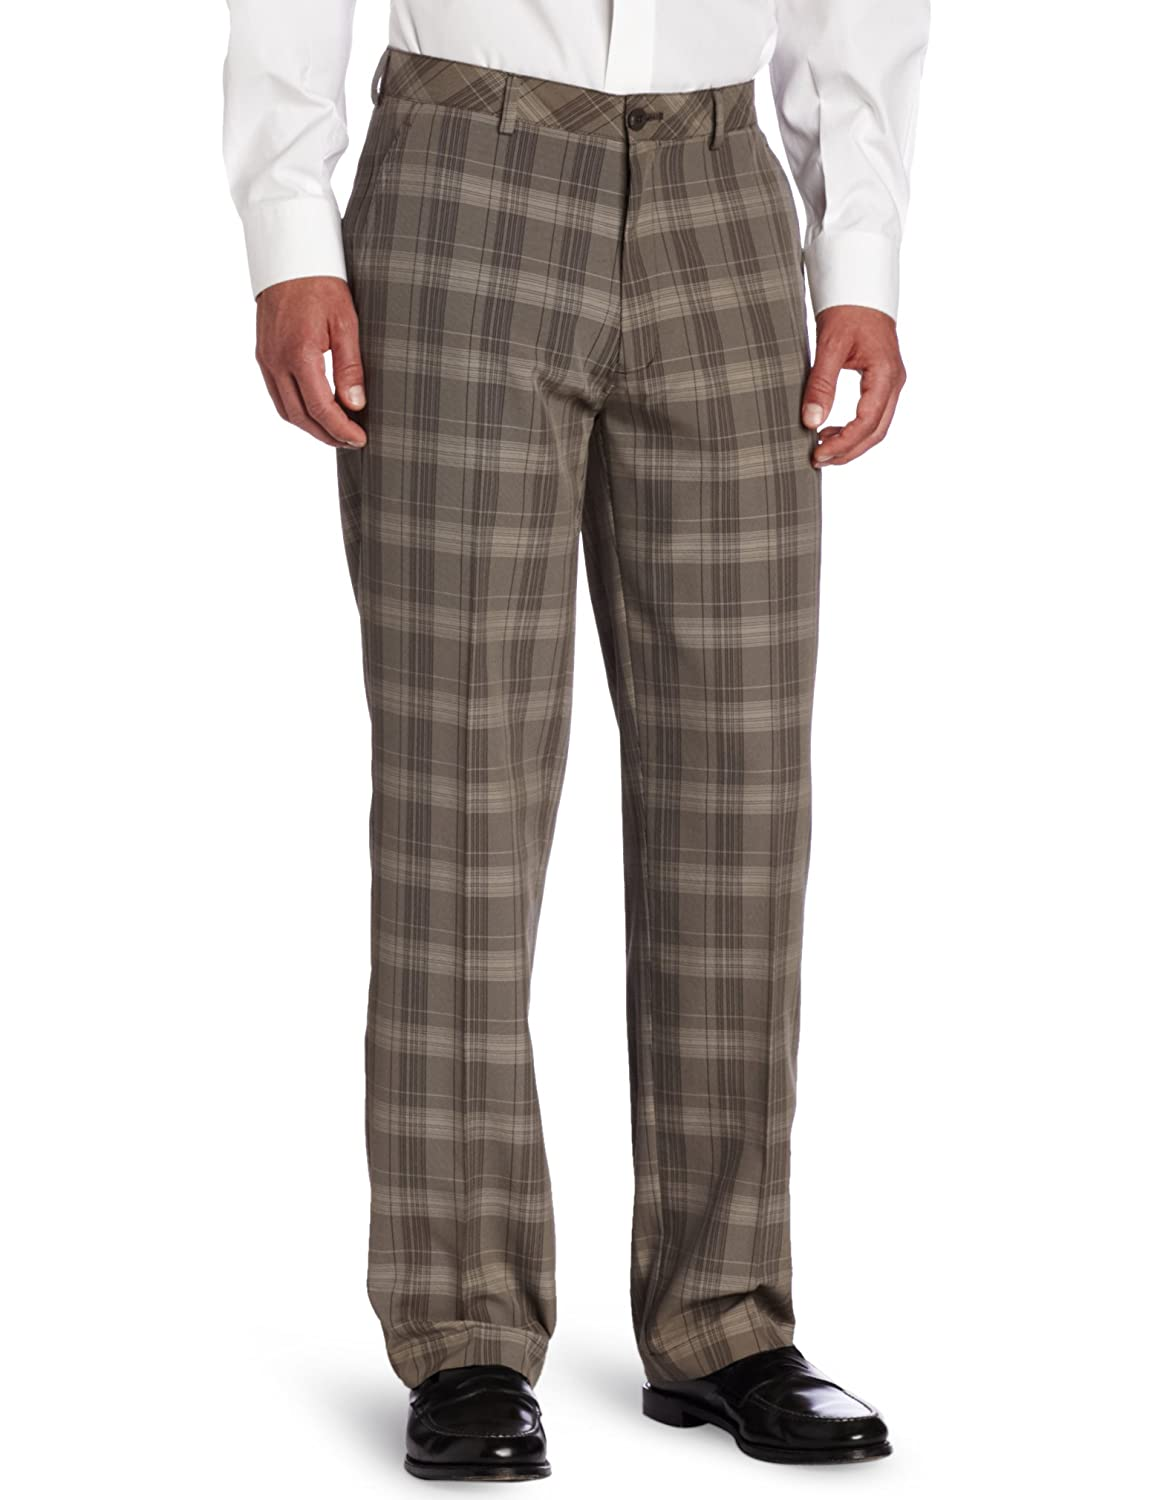 Men's Steampunk Clothing, Costumes, Fashion Haggar Glen Plaid Straight Fit Flat Front Pant $49.19 AT vintagedancer.com